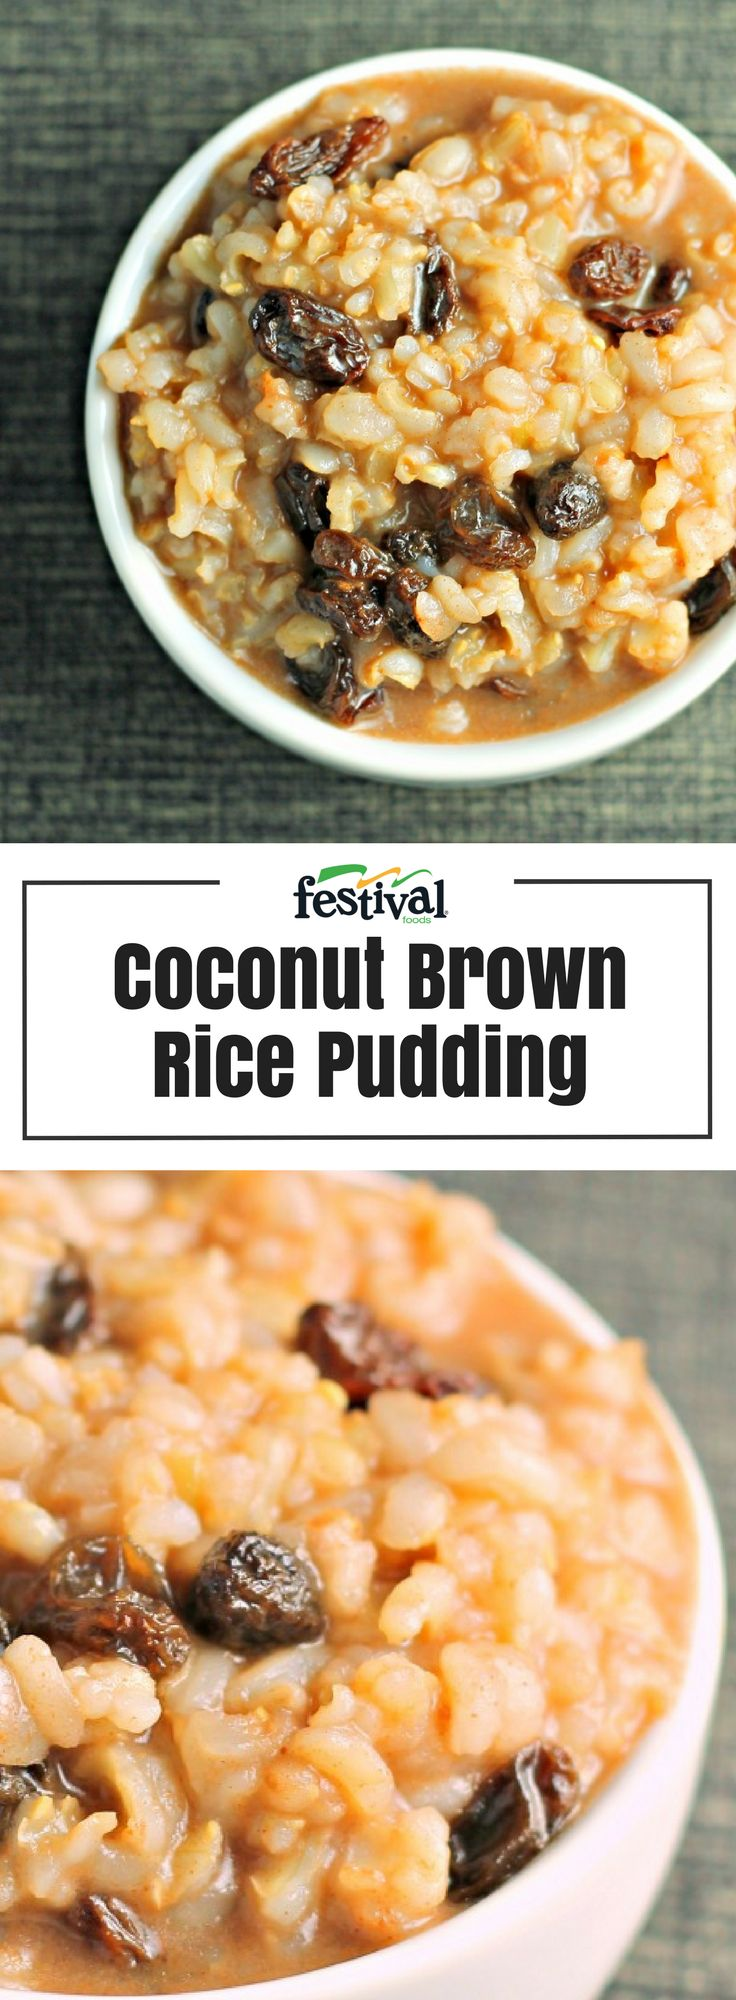 Coconut Brown Rice Pudding   Recipe   Fruit dishes, Brown ...